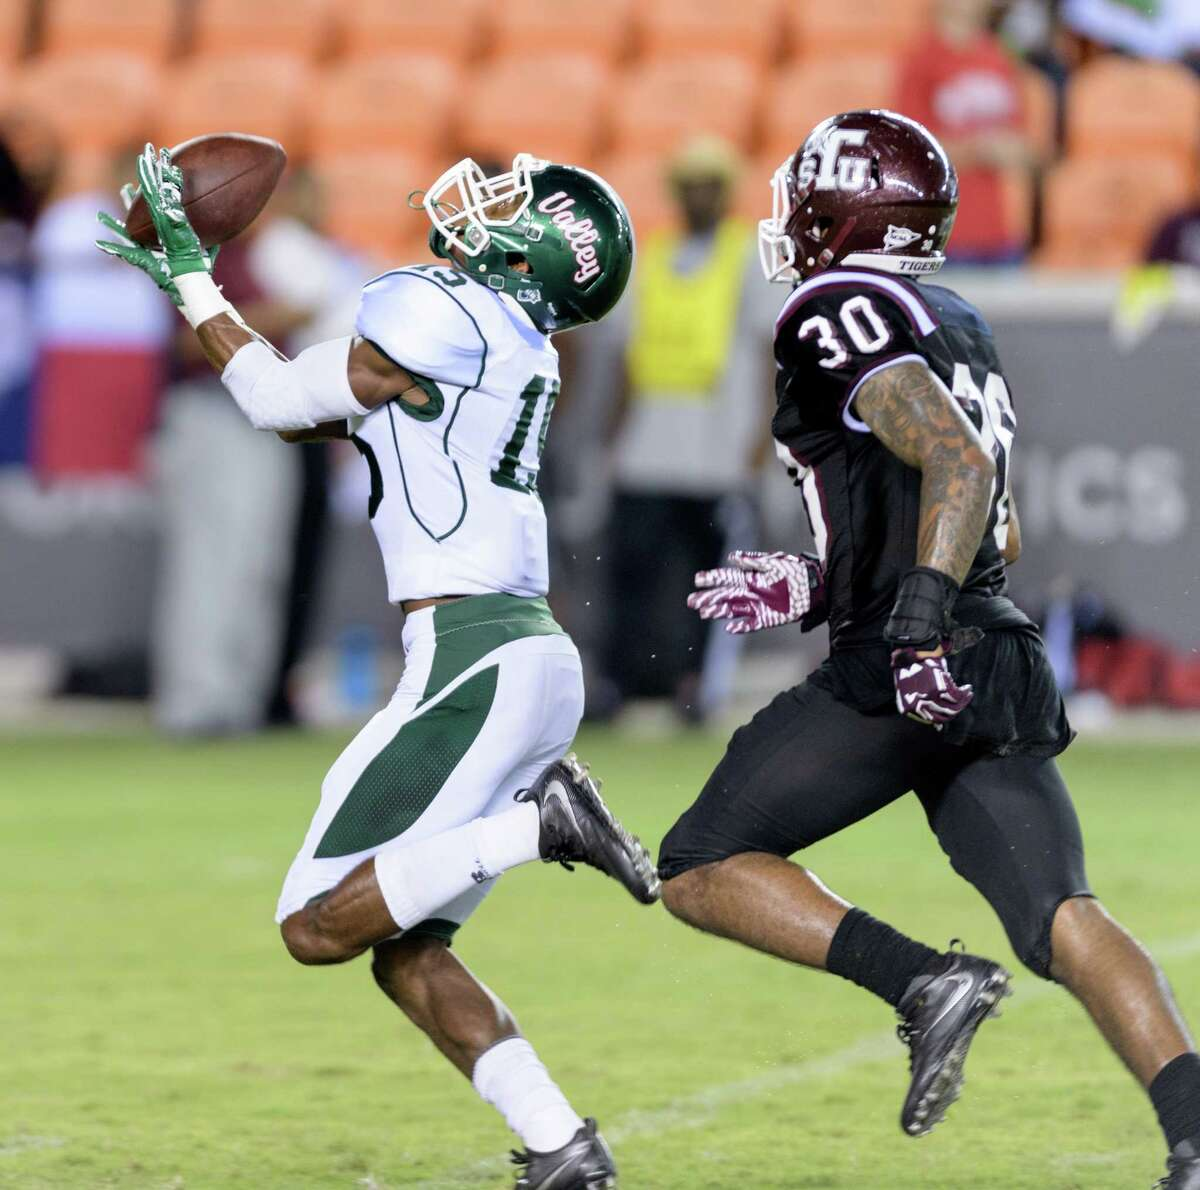 Grant Simms (15) of the Mississippi Valley State Devils bobbles a pass in the second half against the TSU Tigers in a SWAC college football game on Saturday, September 17, 2016 at BBVA Compass Stadium in Houston Texas.